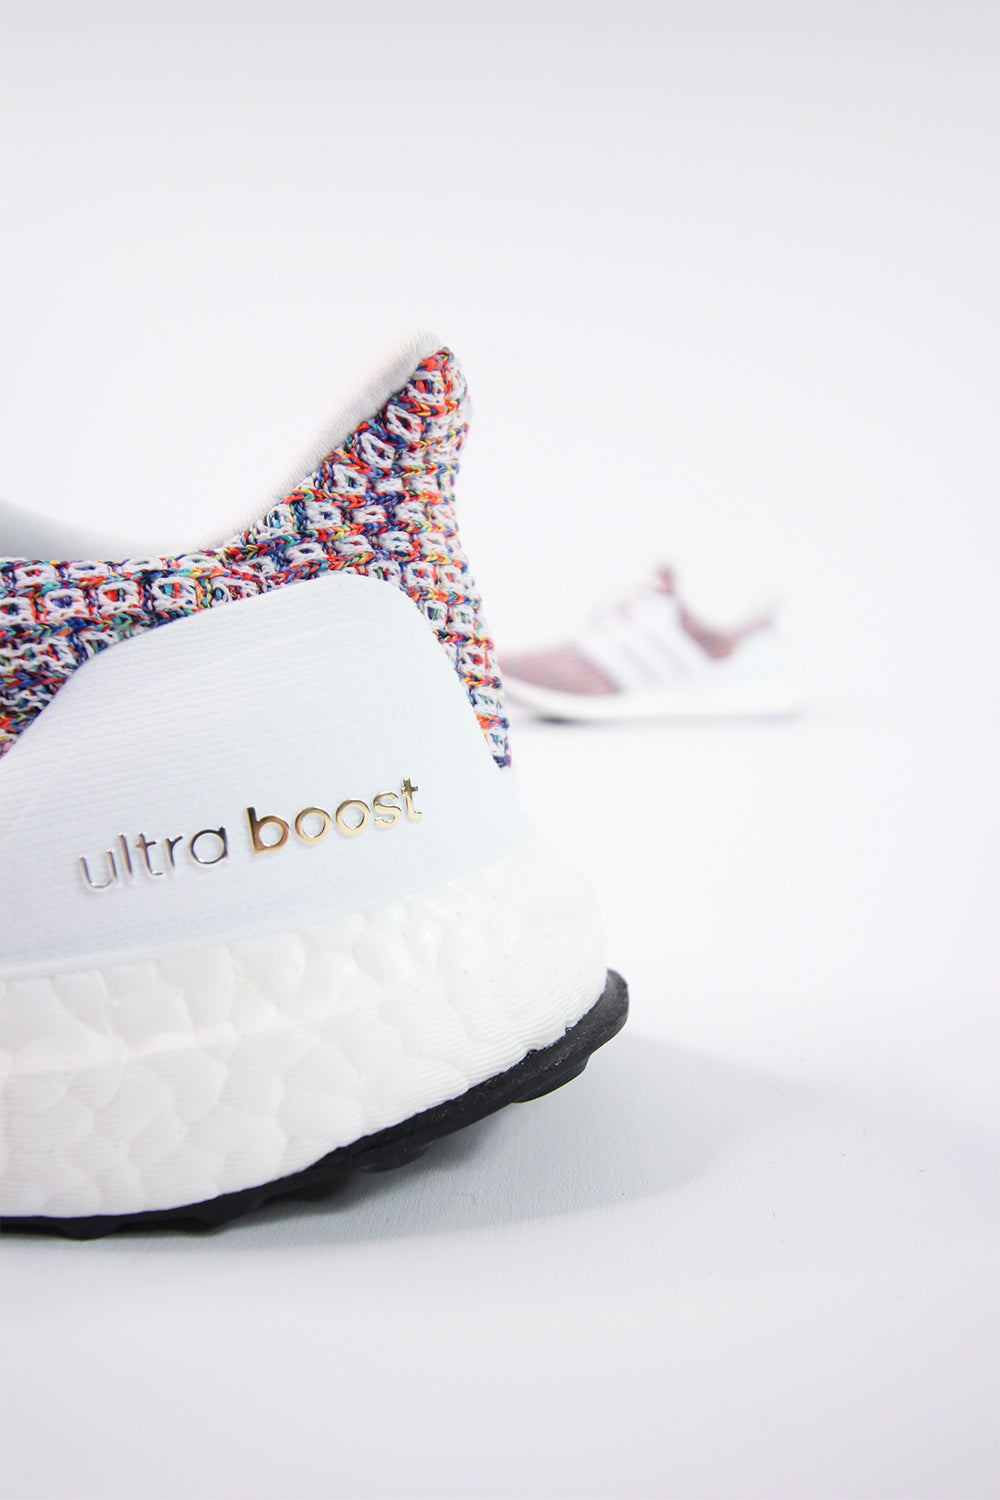 Adidas - Ultraboost (FTW White/ FTW White/Conavy) CM8111